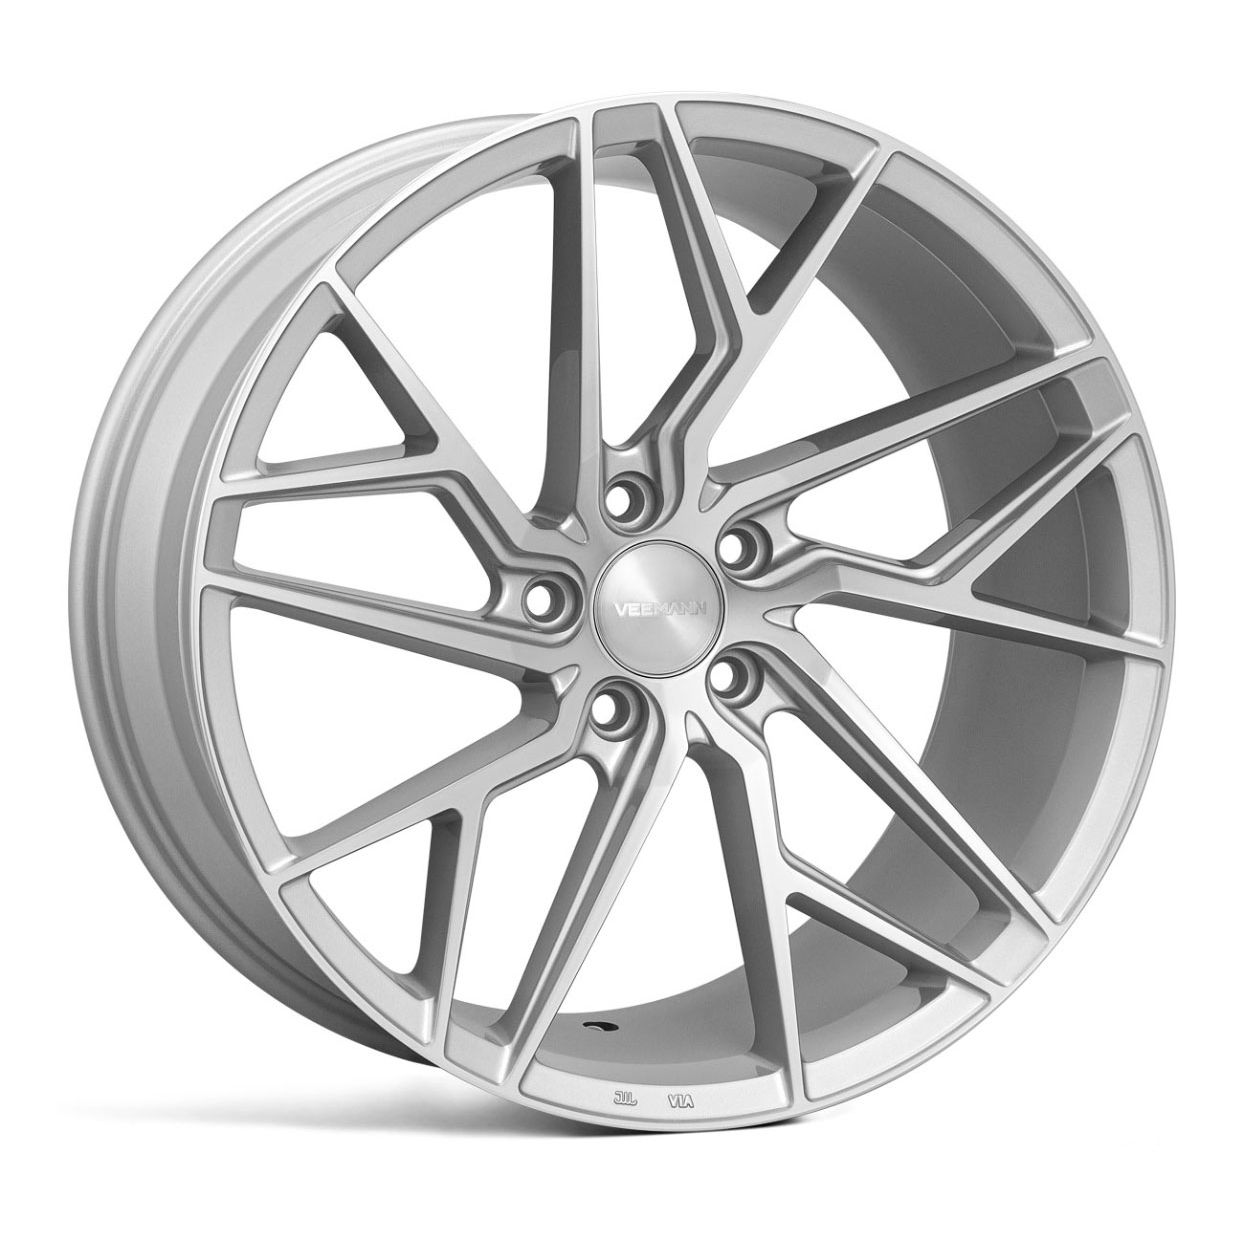 "NEW 21"" VEEMANN V-FS44 ALLOY WHEELS IN SILVER POL WITH WIDER 10.5"" REARS"